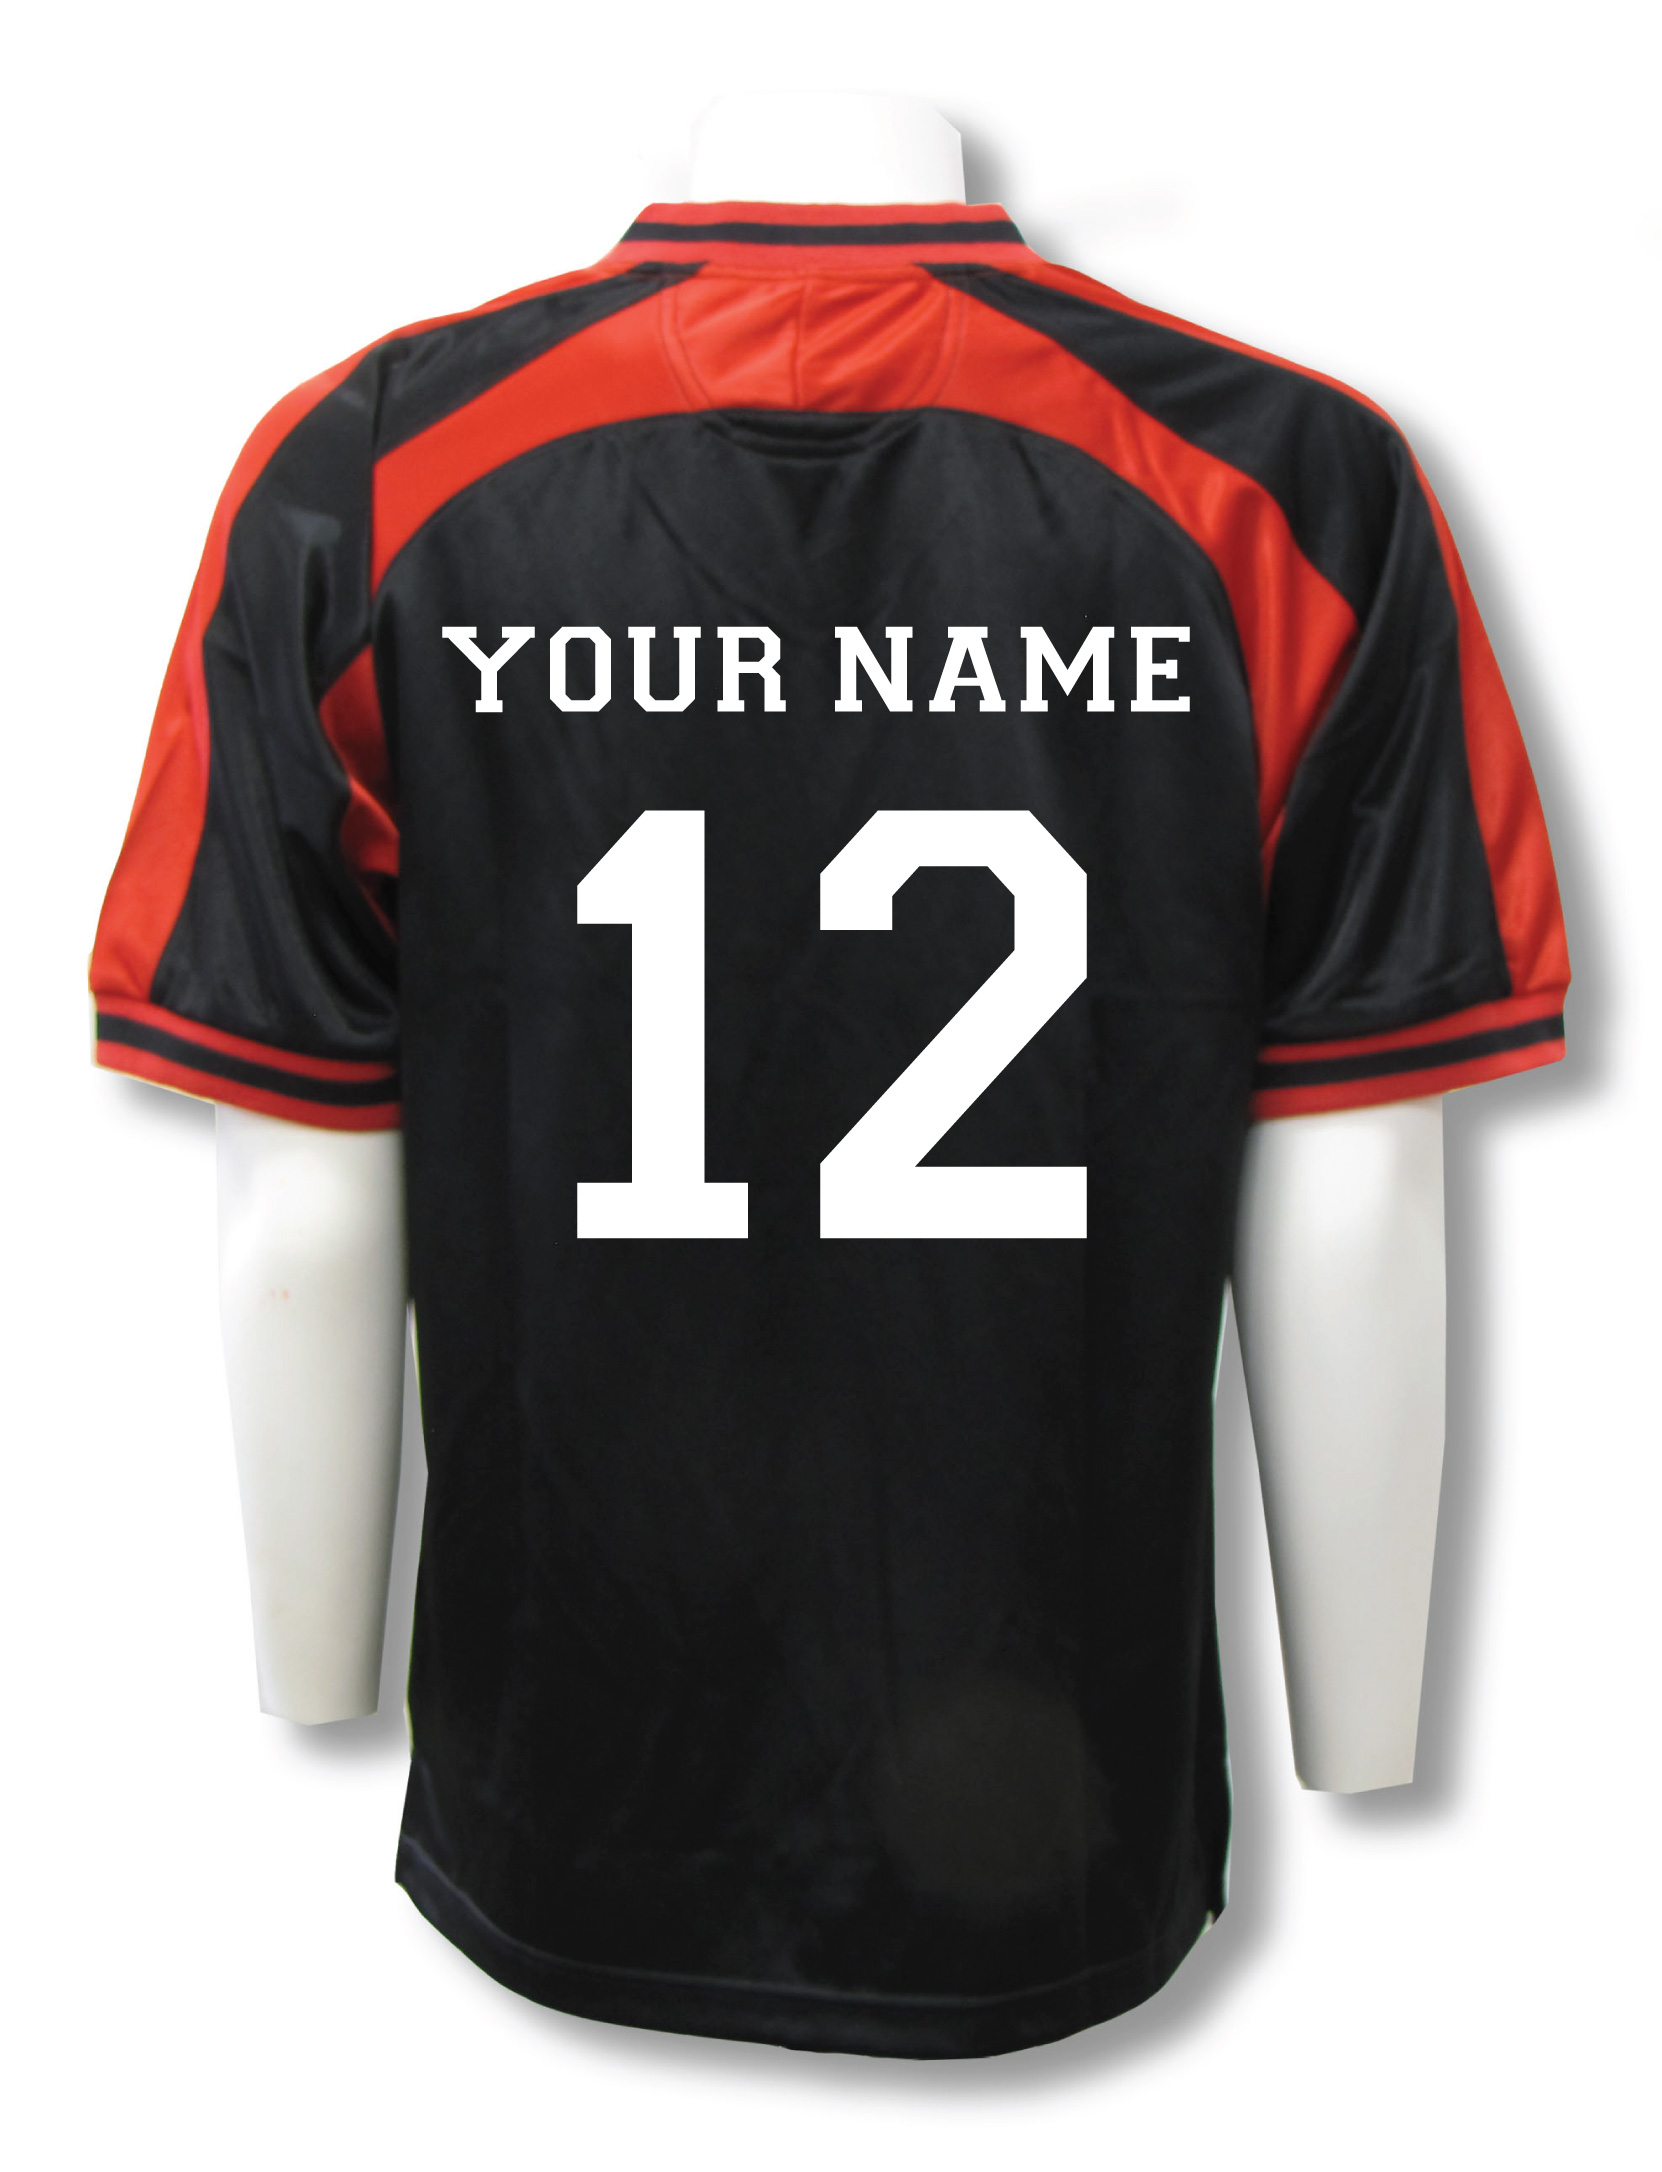 SpitfireGameDay_black-red-back